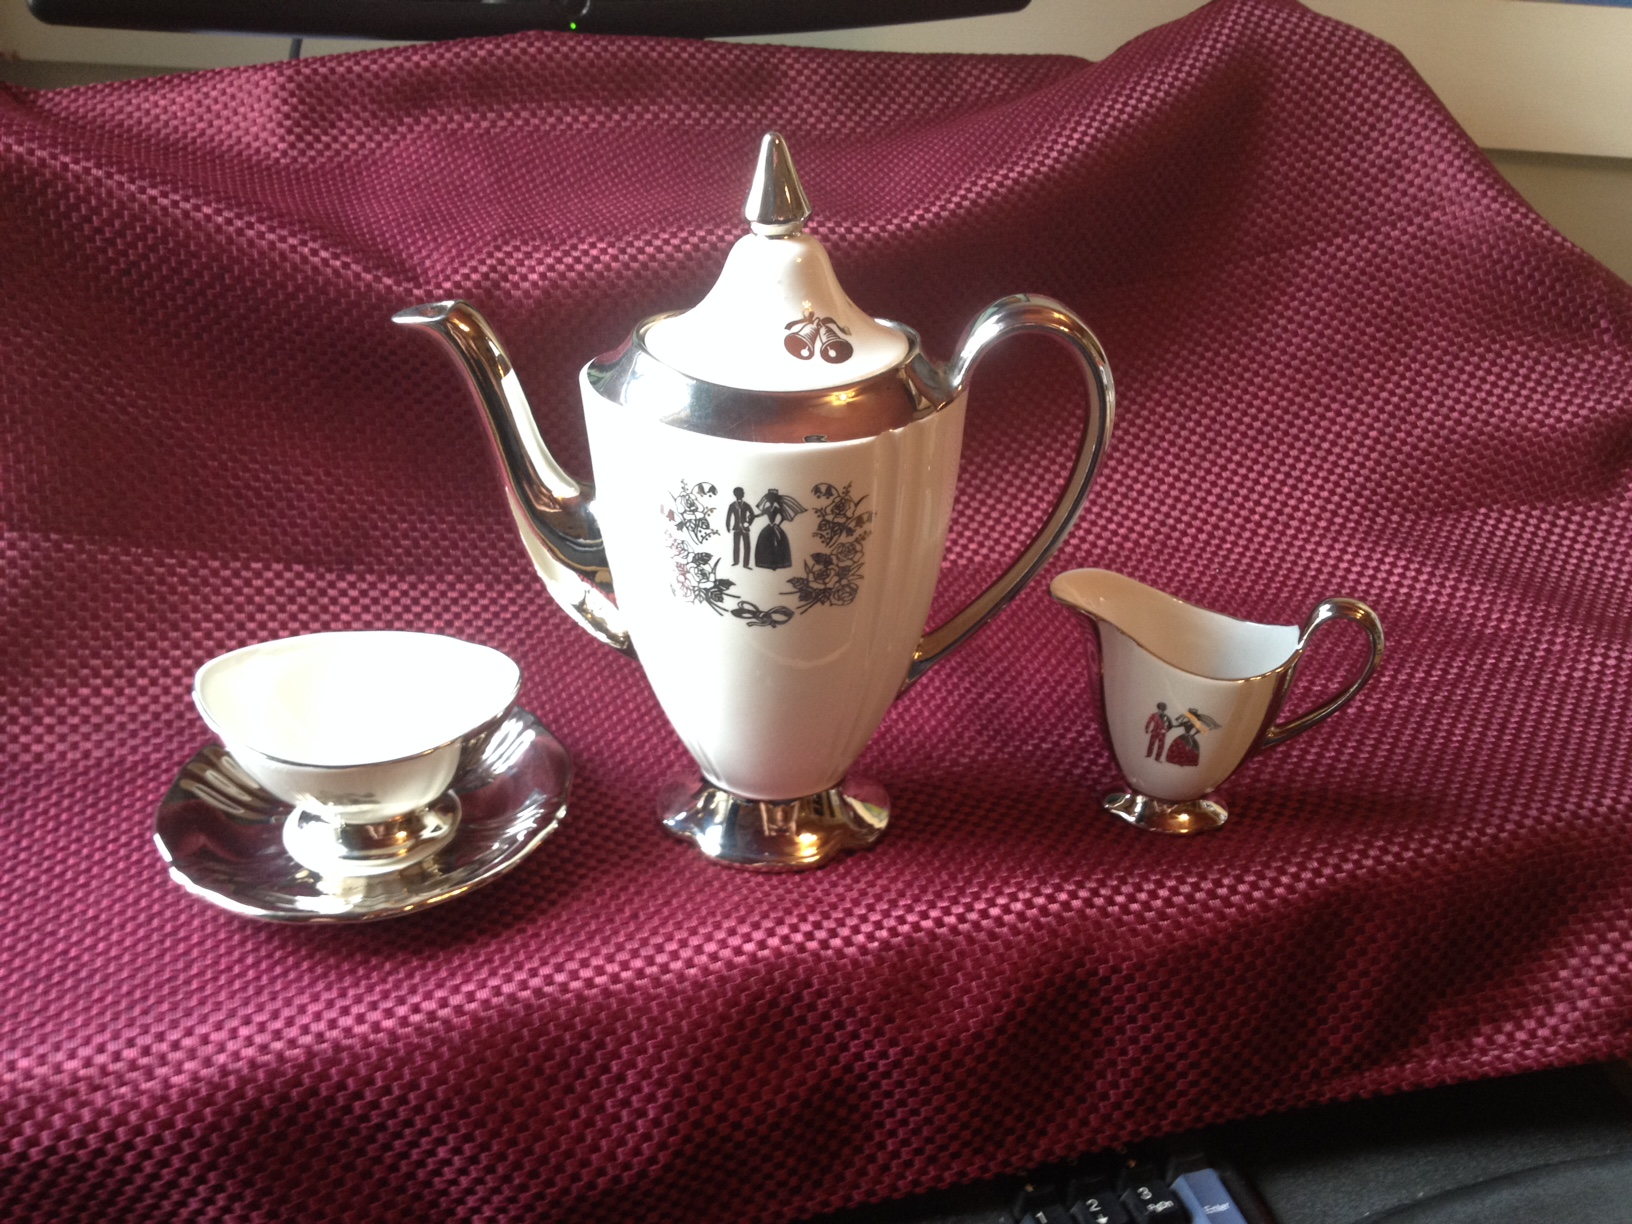 Royal Winton Our Wedding Tea Set.JPG